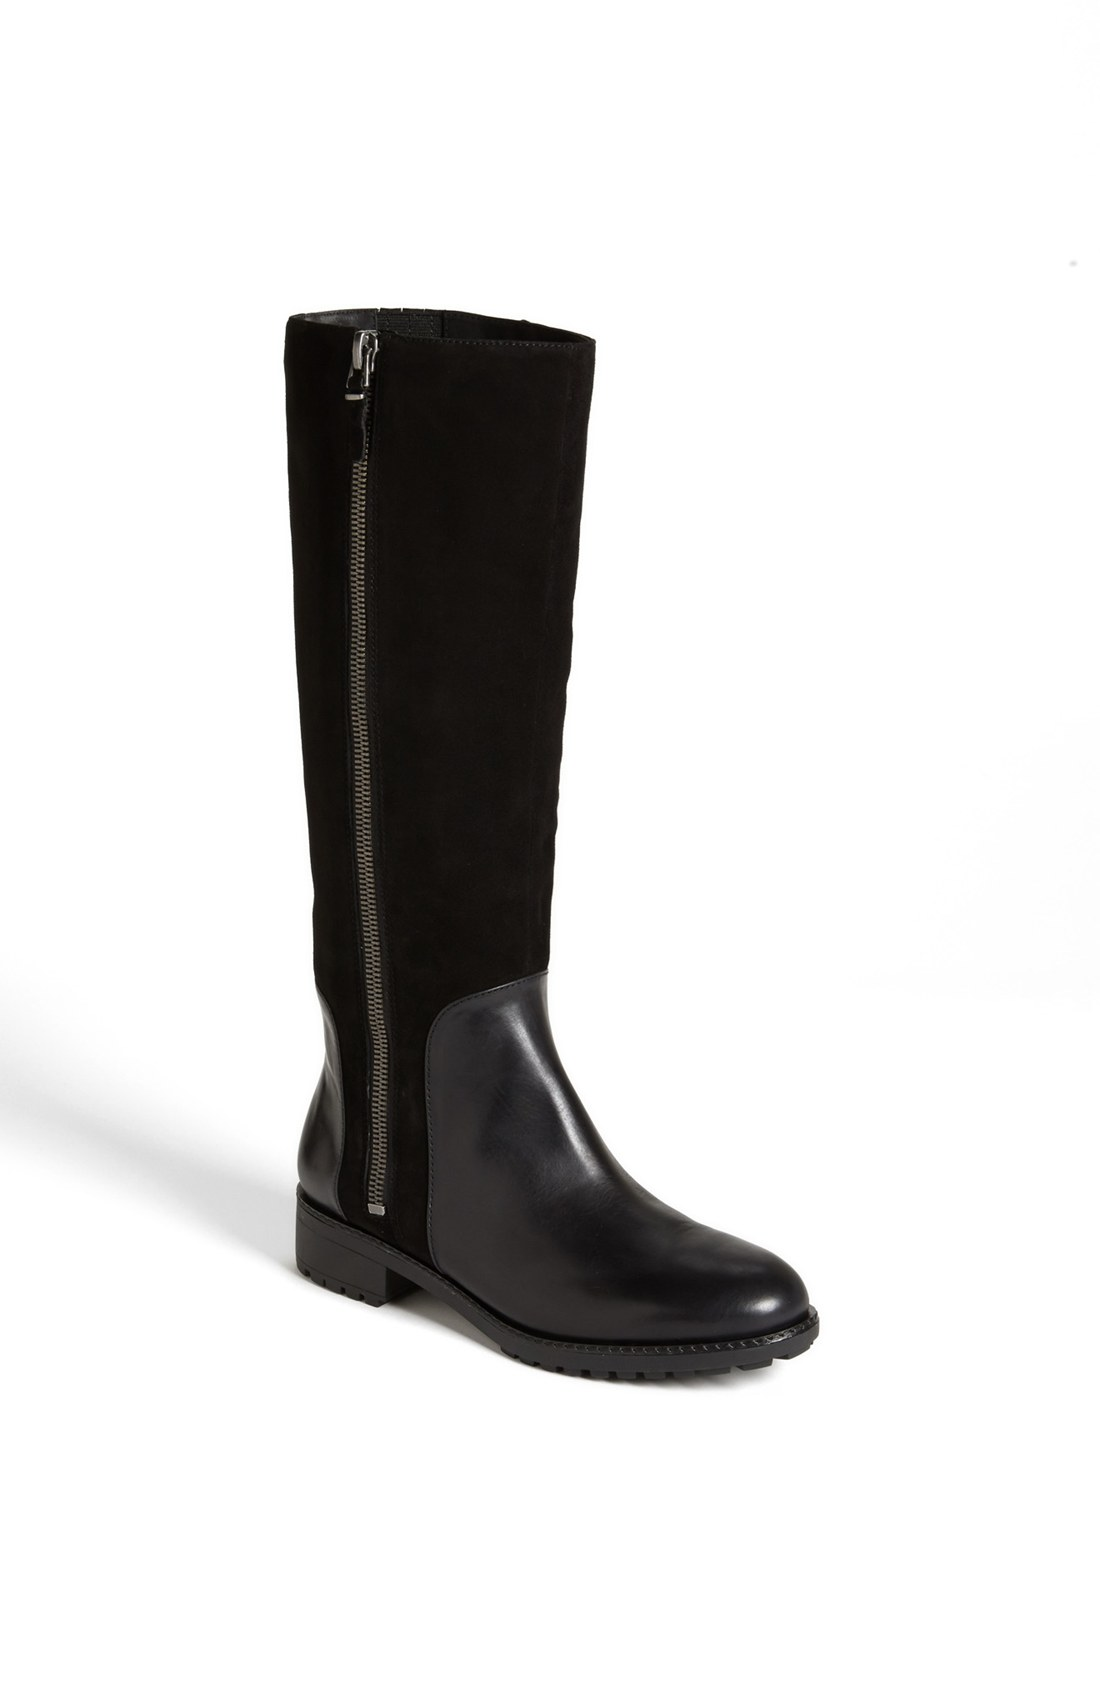 via spiga edeline boot in black black calf suede lyst